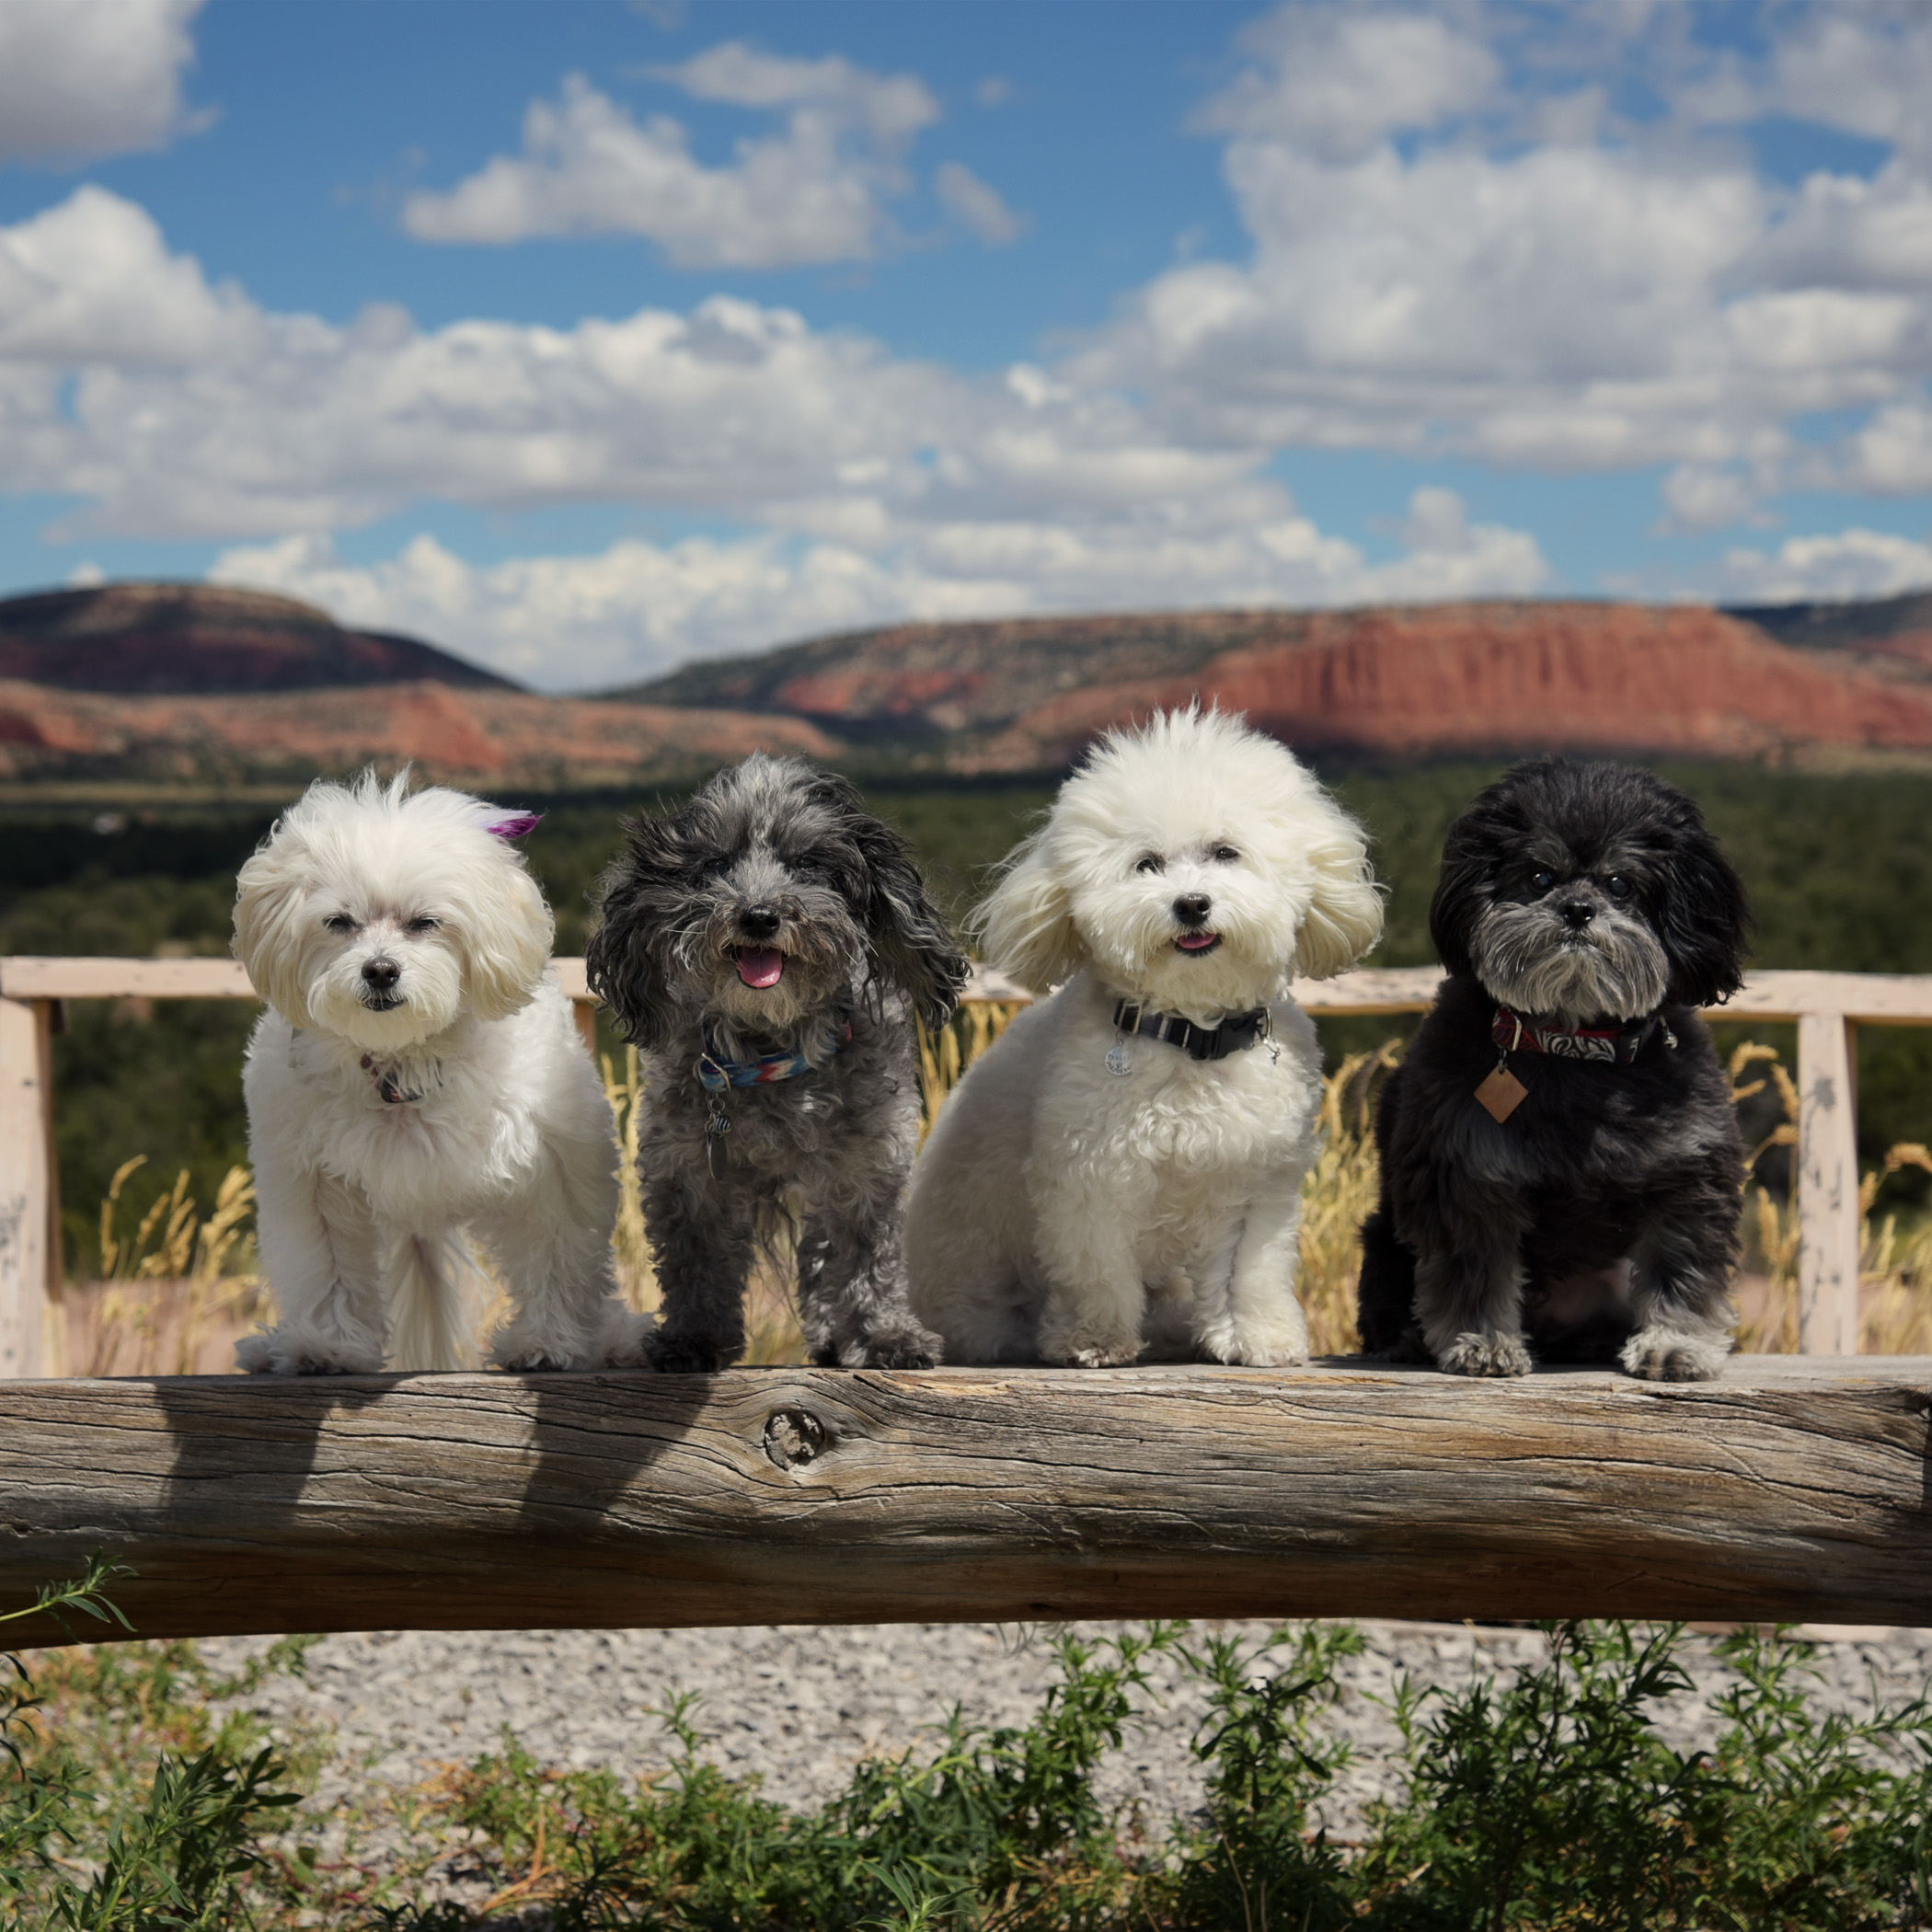 Here we are at the Continental Divide…we have no idea what it is, but we did get to leave our scent and got some treats out of the deal, so it must be a pretty cool thing!